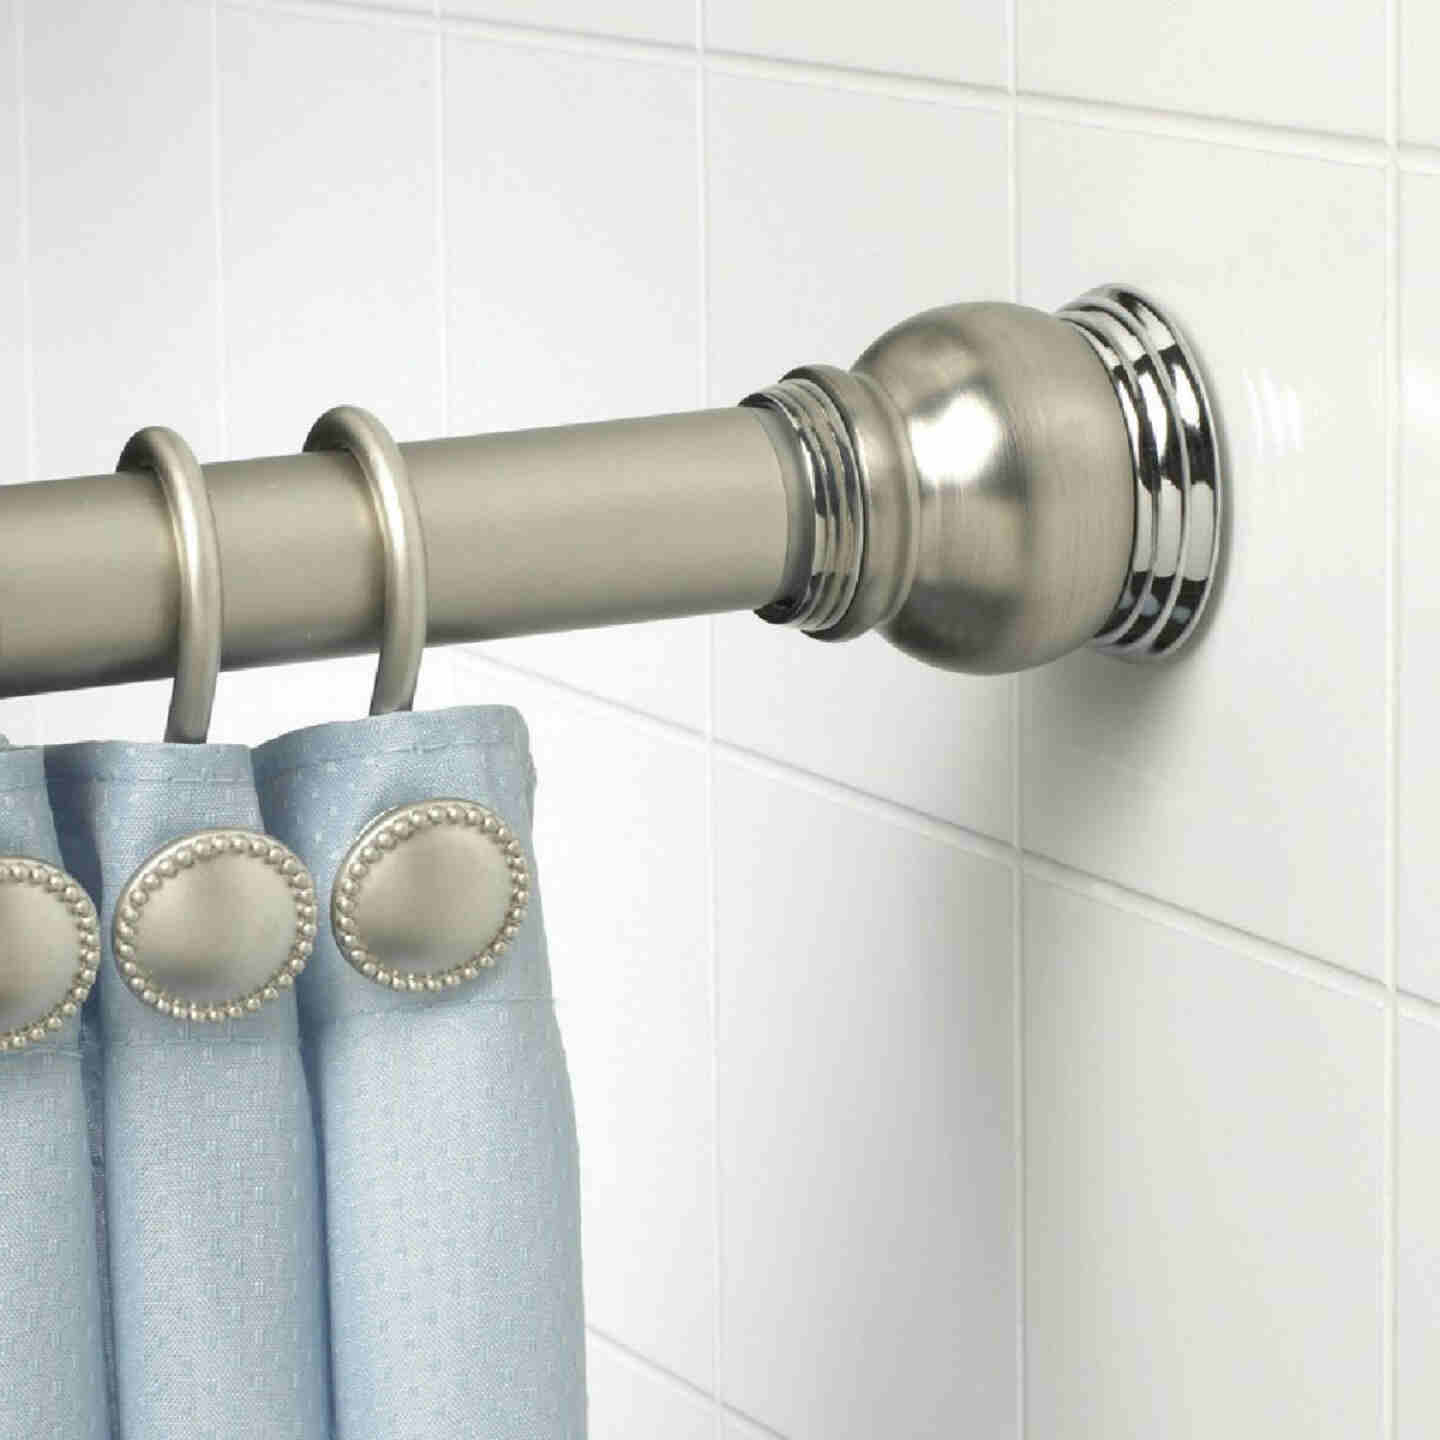 Zenith Straight 72 In. Adjustable Tension Finial Shower Rod in Satin Nickel Image 1